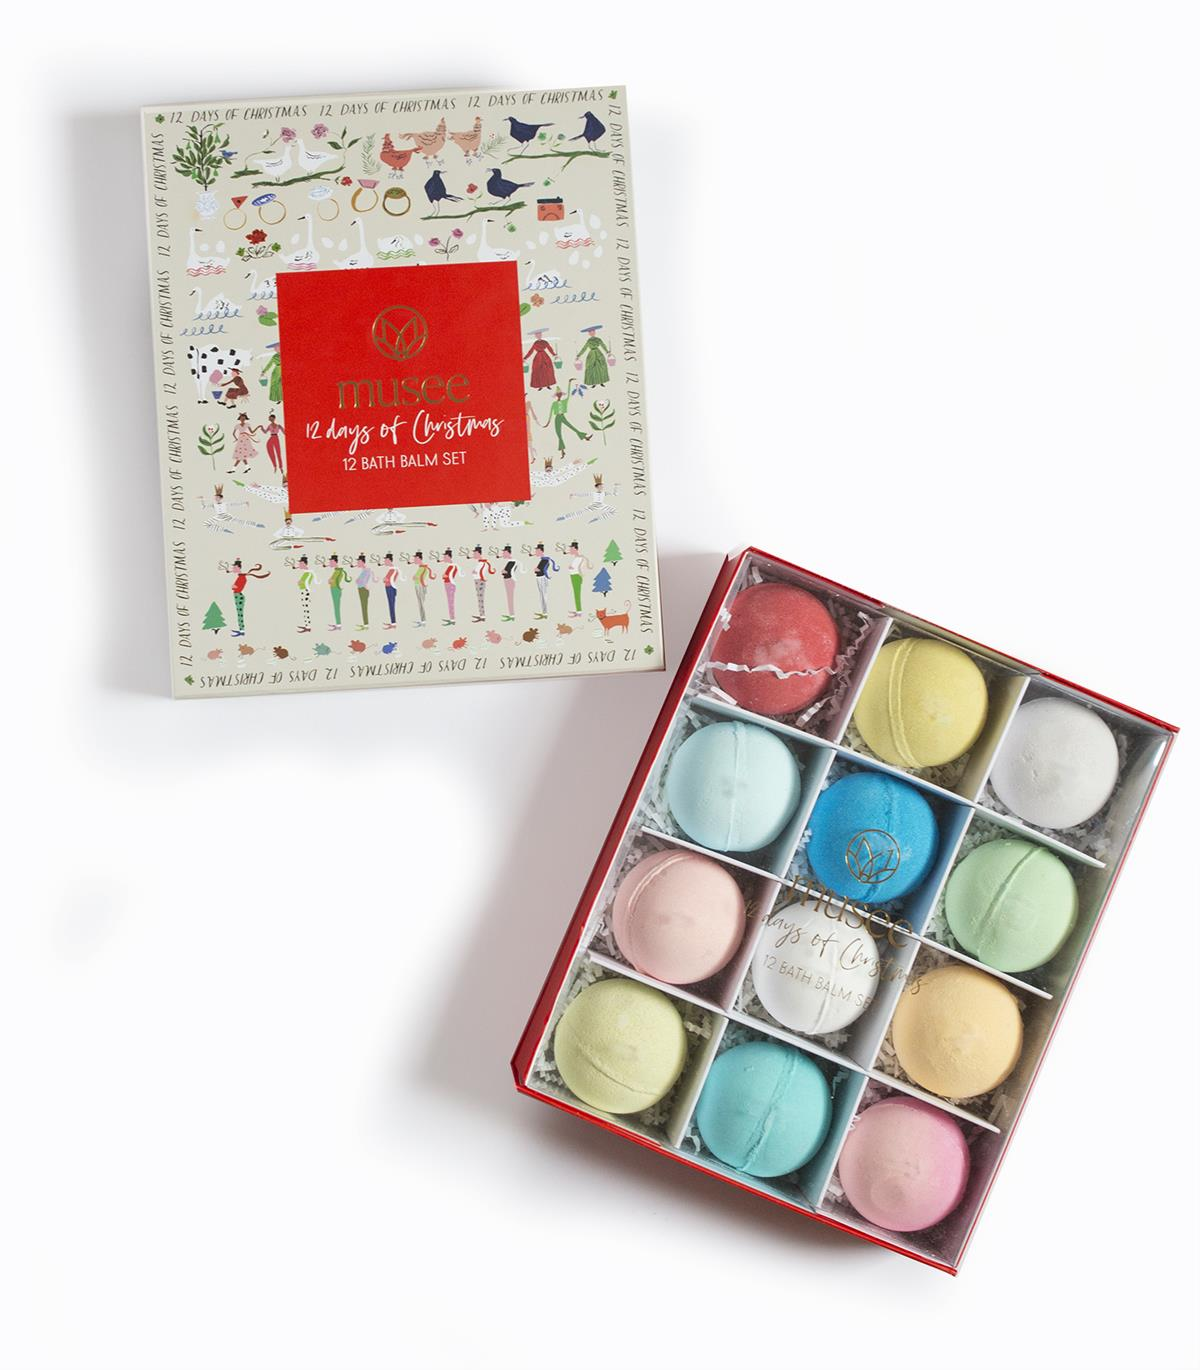 12 Days of Christmas Bath Bomb Set